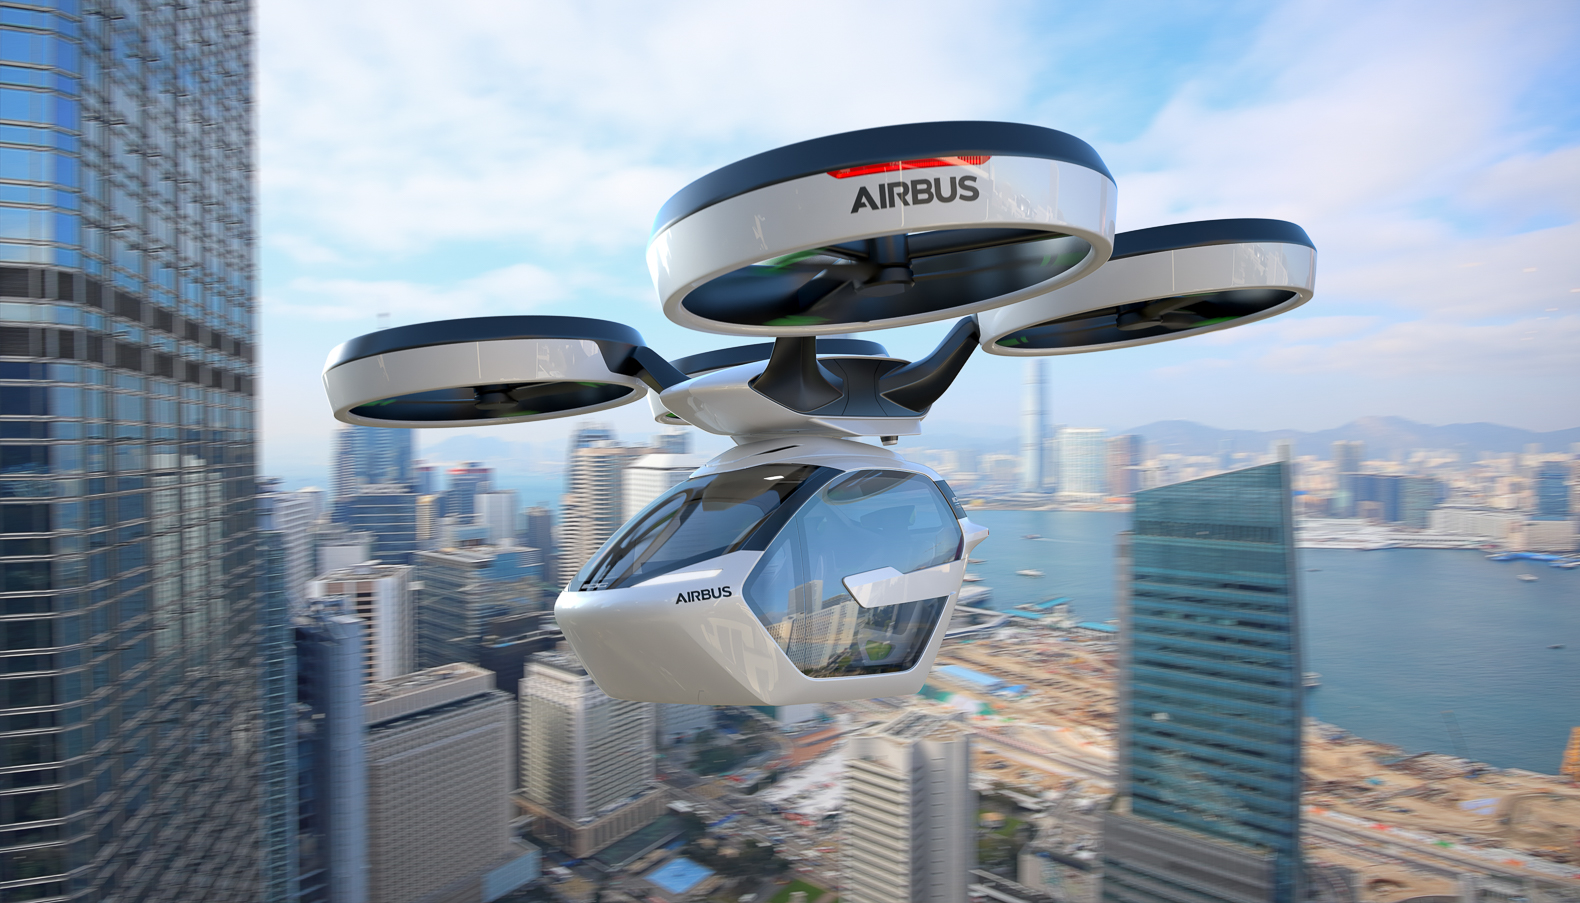 Airbus and Italdesign unveil modular urban land and air transport system.